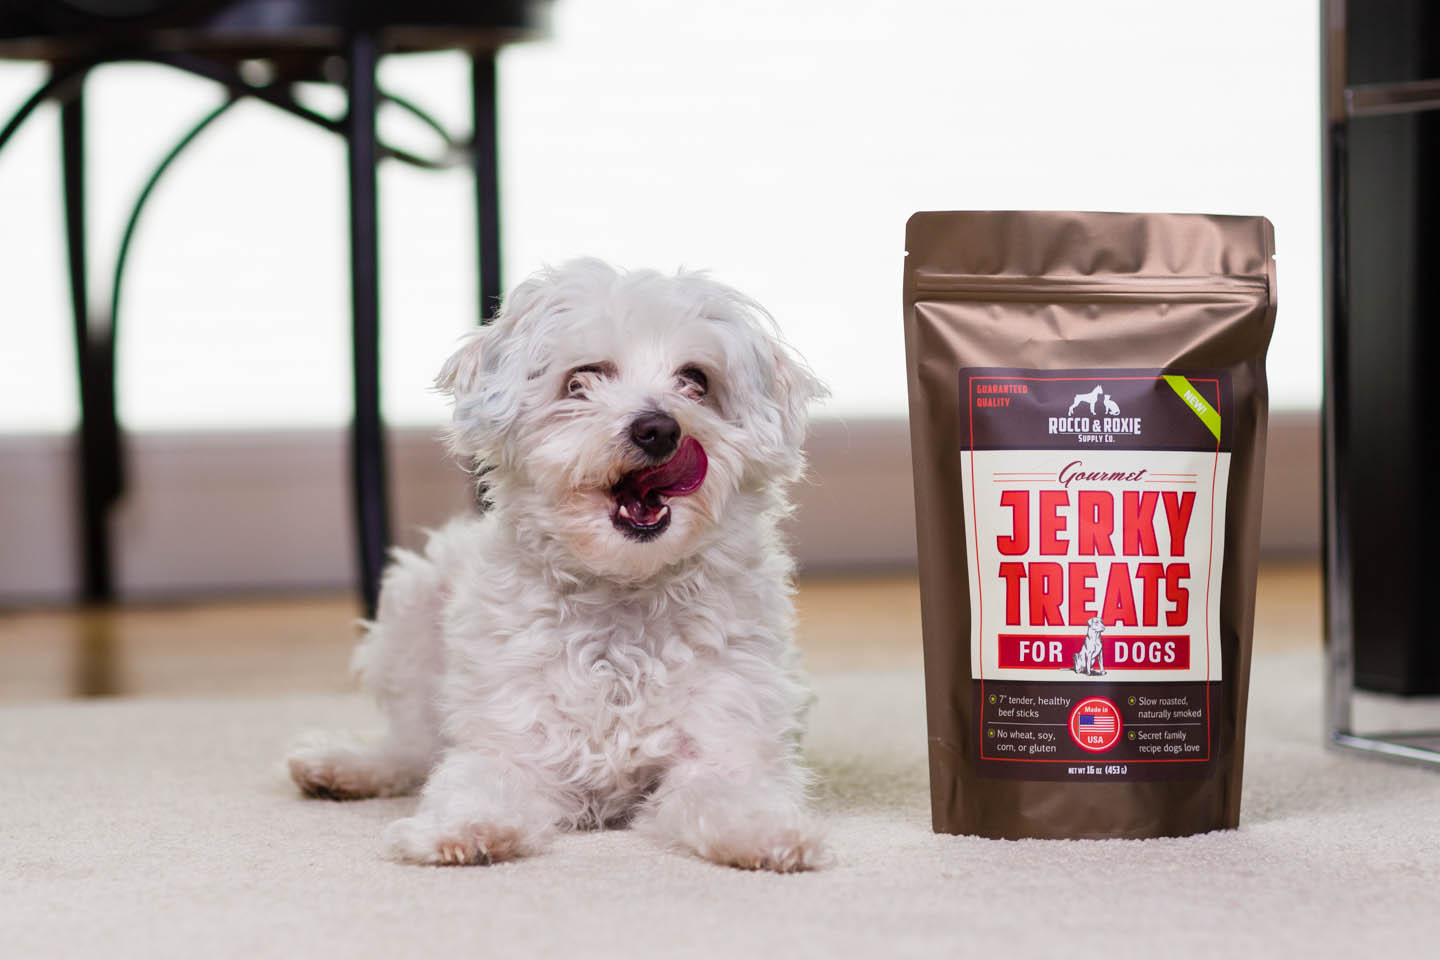 A dog licks his lips after enjoying the jerky treats